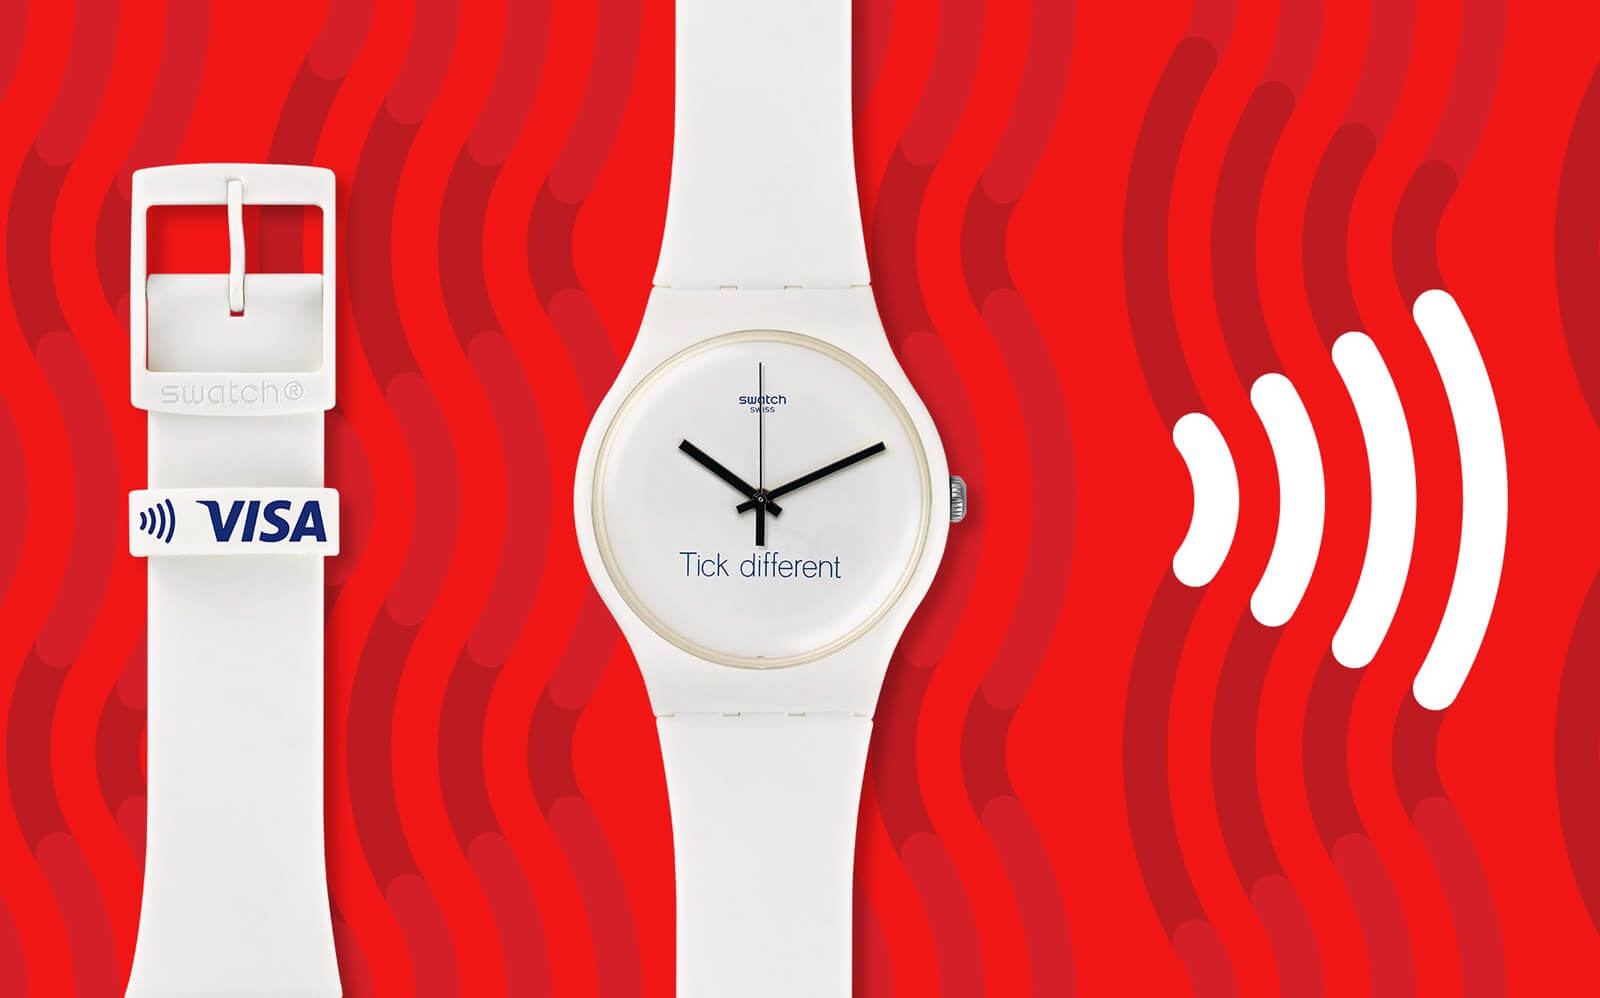 Swatch allowed to use 'Tick different' slogan, despite Apple's objections